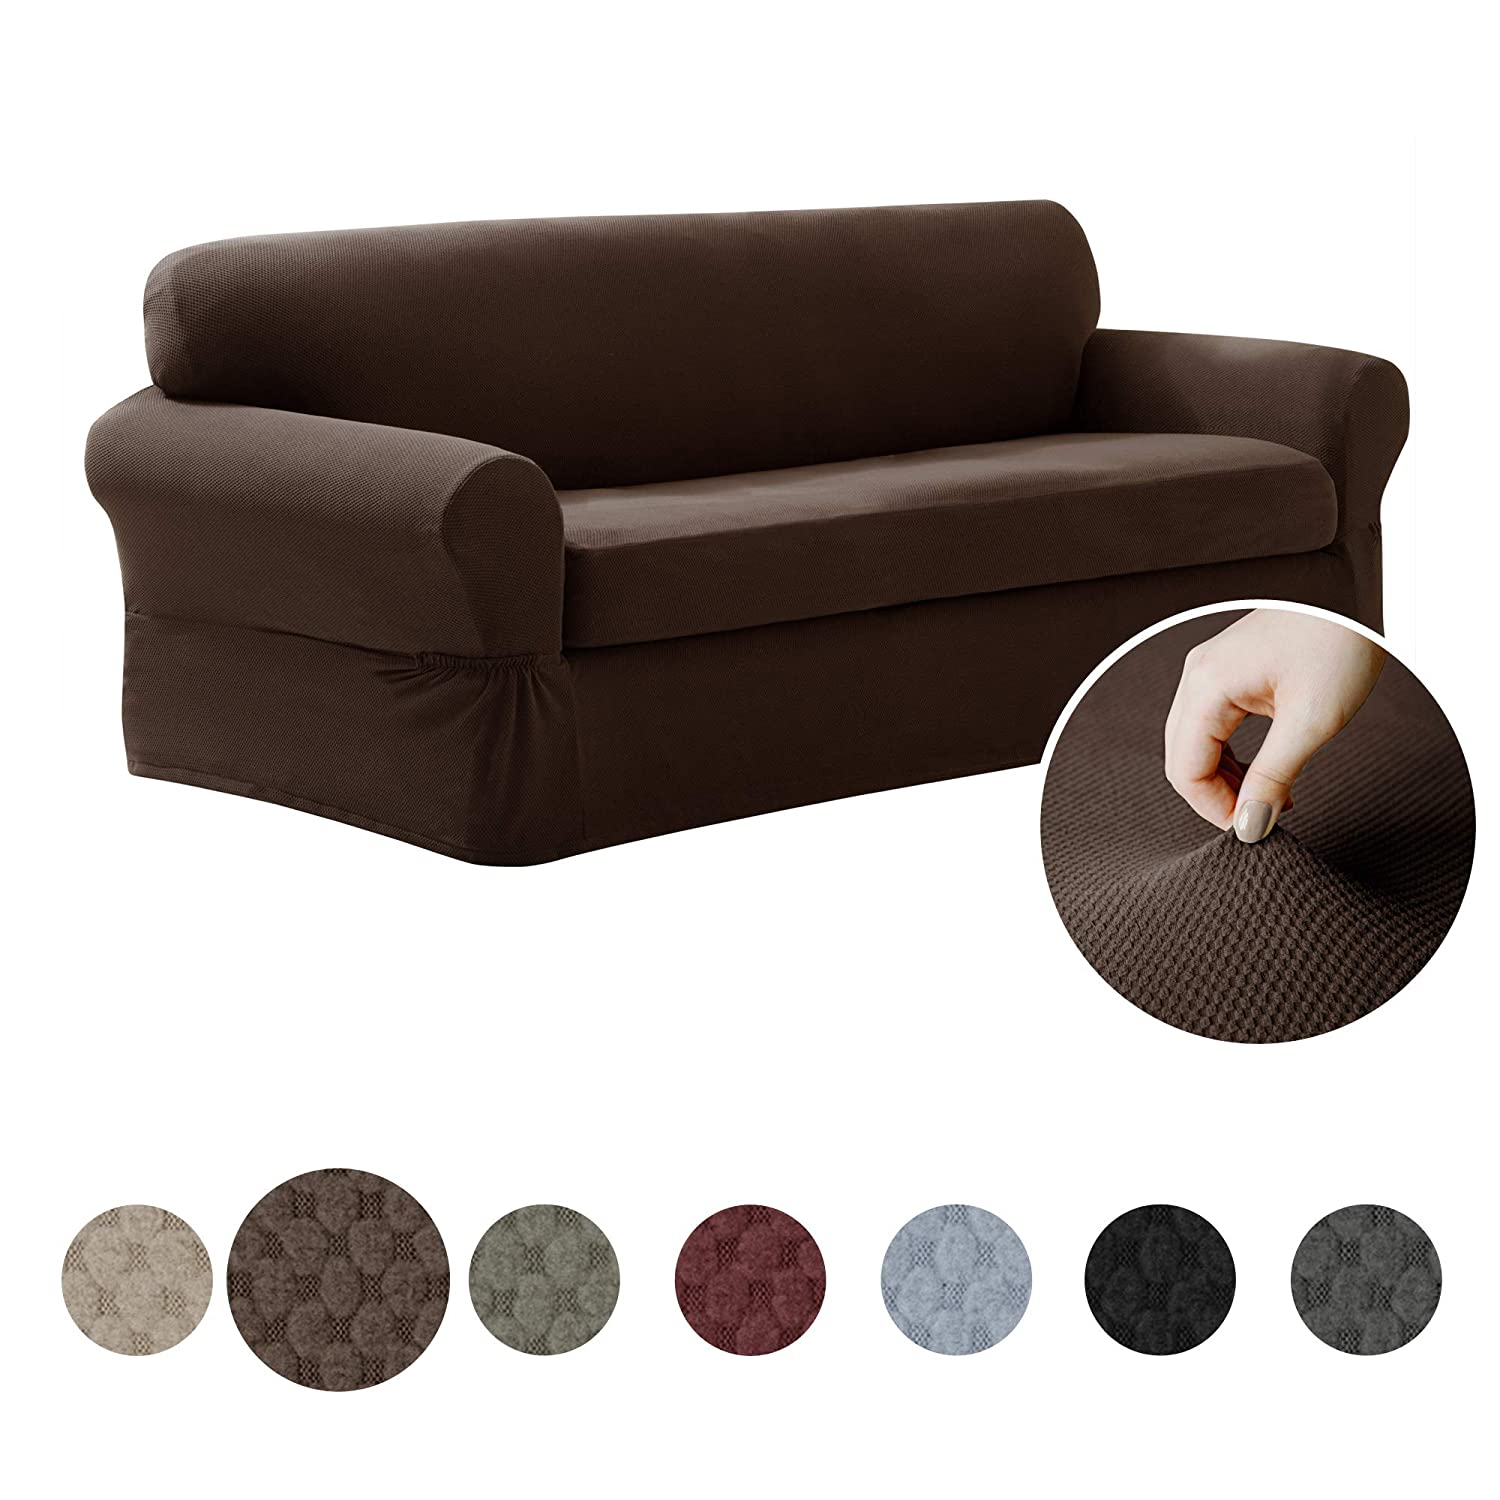 MAYTEX Pixel Ultra Soft Stretch 2 Piece Sofa Furniture Cover Slipcover,  Chocolate Brown